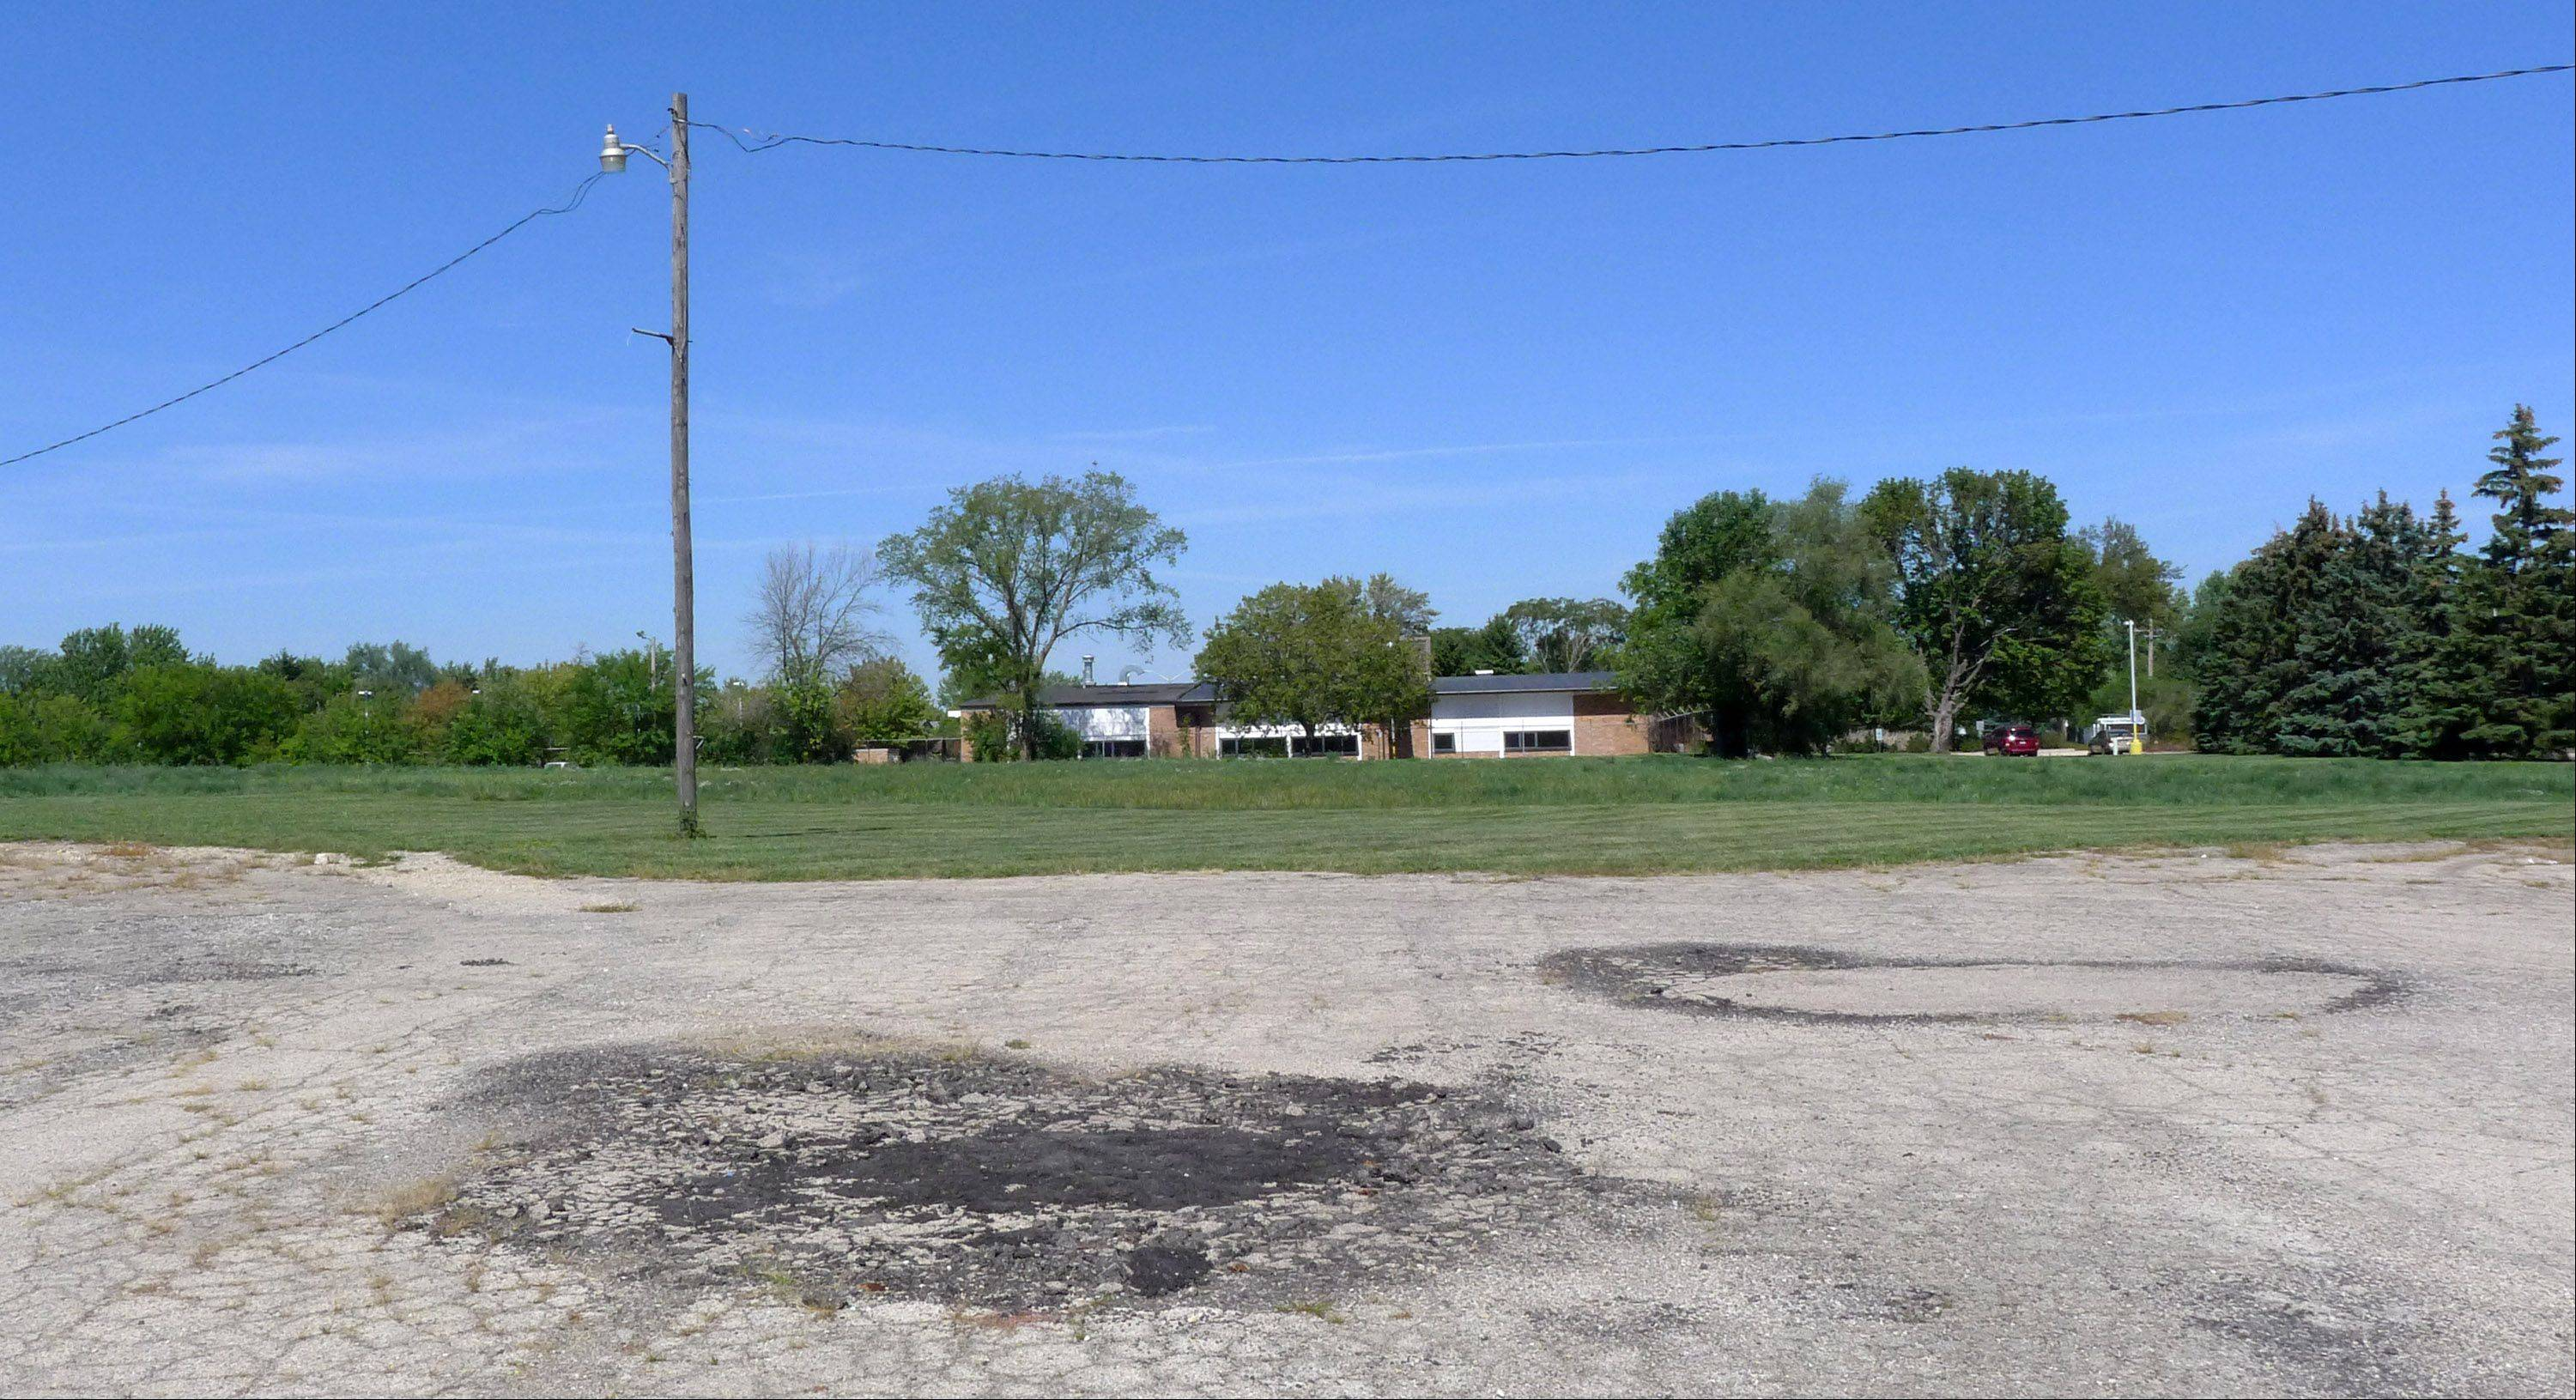 The Carol Stream Library board voted Monday to put the 7½-acre Kuhn Road property up for sale.